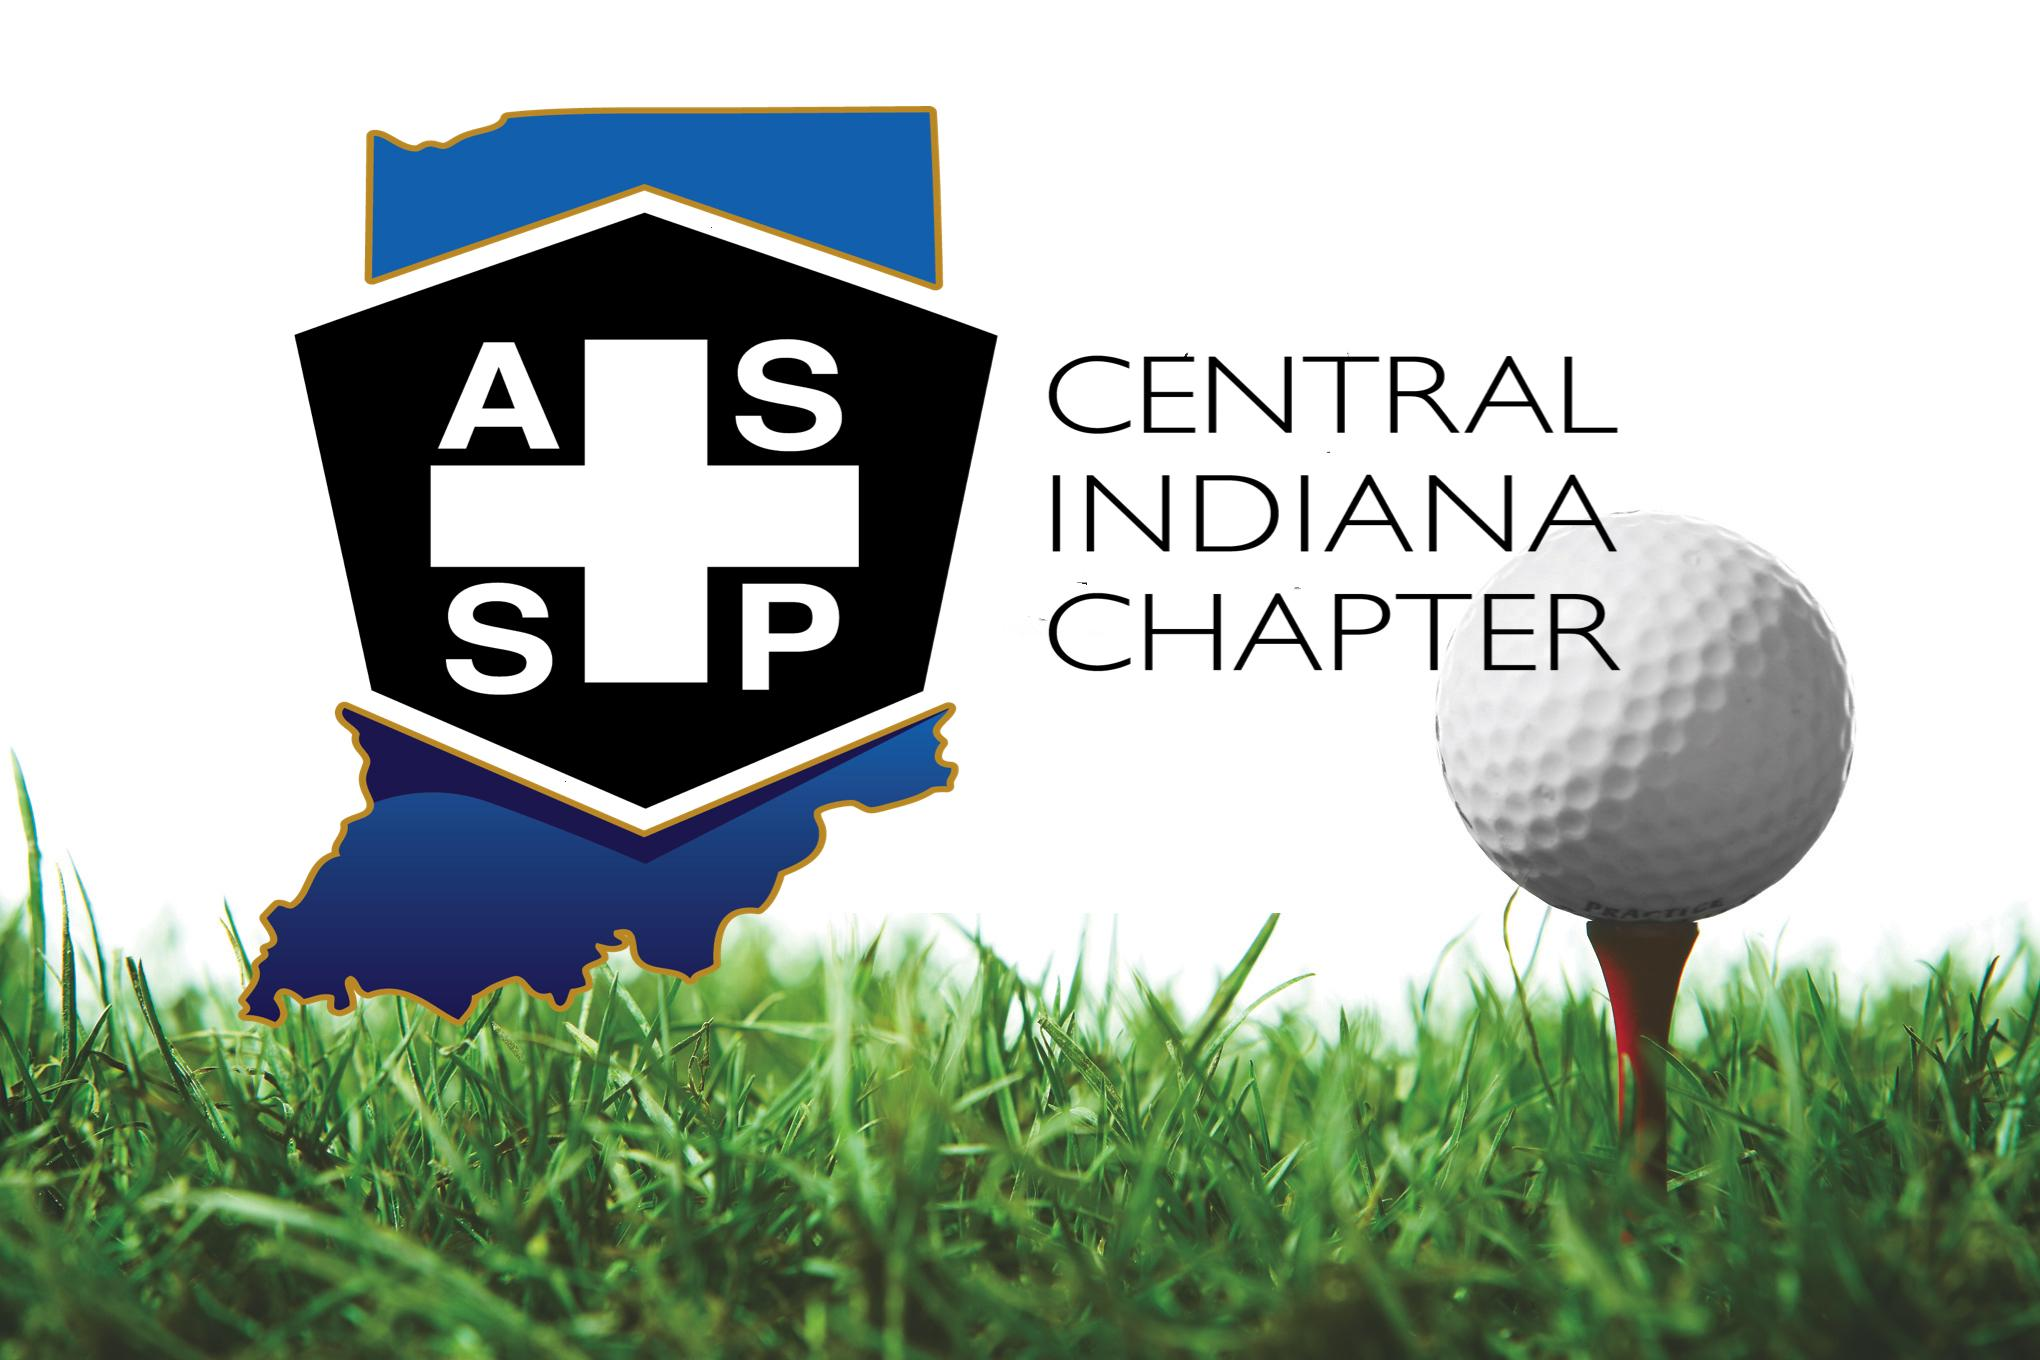 9th Annual Scholarship Golf Outing - Future Safety Leaders (July 30, 2021)